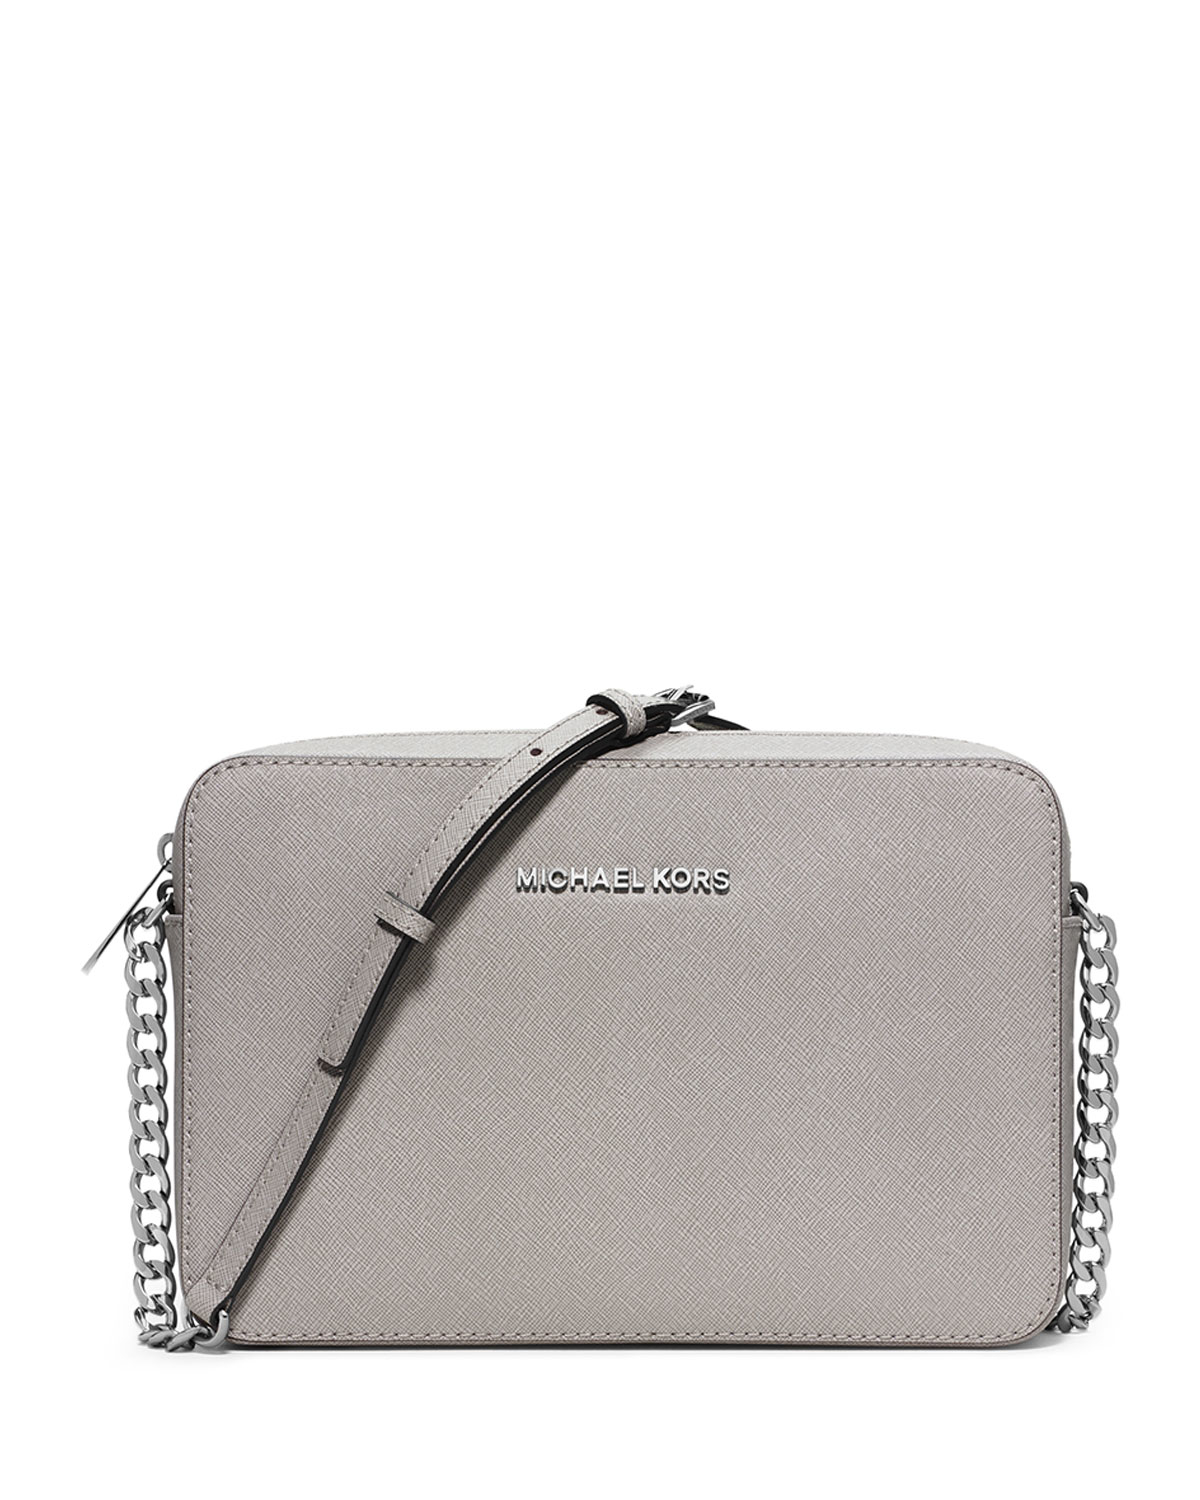 05389e2ee43b MICHAEL Michael Kors Jet Set Travel Large Crossbody Bag in Gray - Lyst